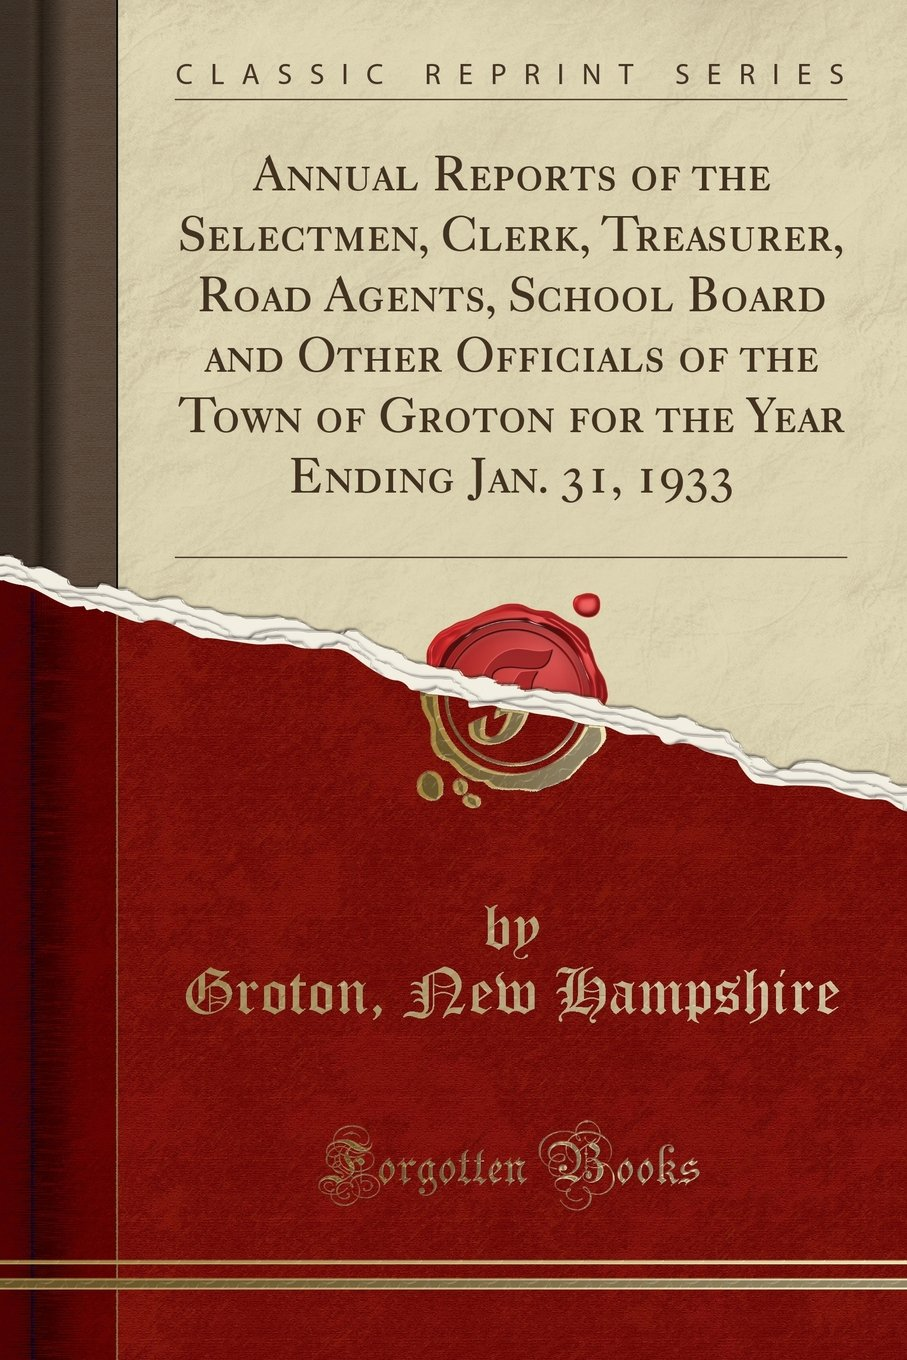 Download Annual Reports of the Selectmen, Clerk, Treasurer, Road Agents, School Board and Other Officials of the Town of Groton for the Year Ending Jan. 31, 1933 (Classic Reprint) ebook